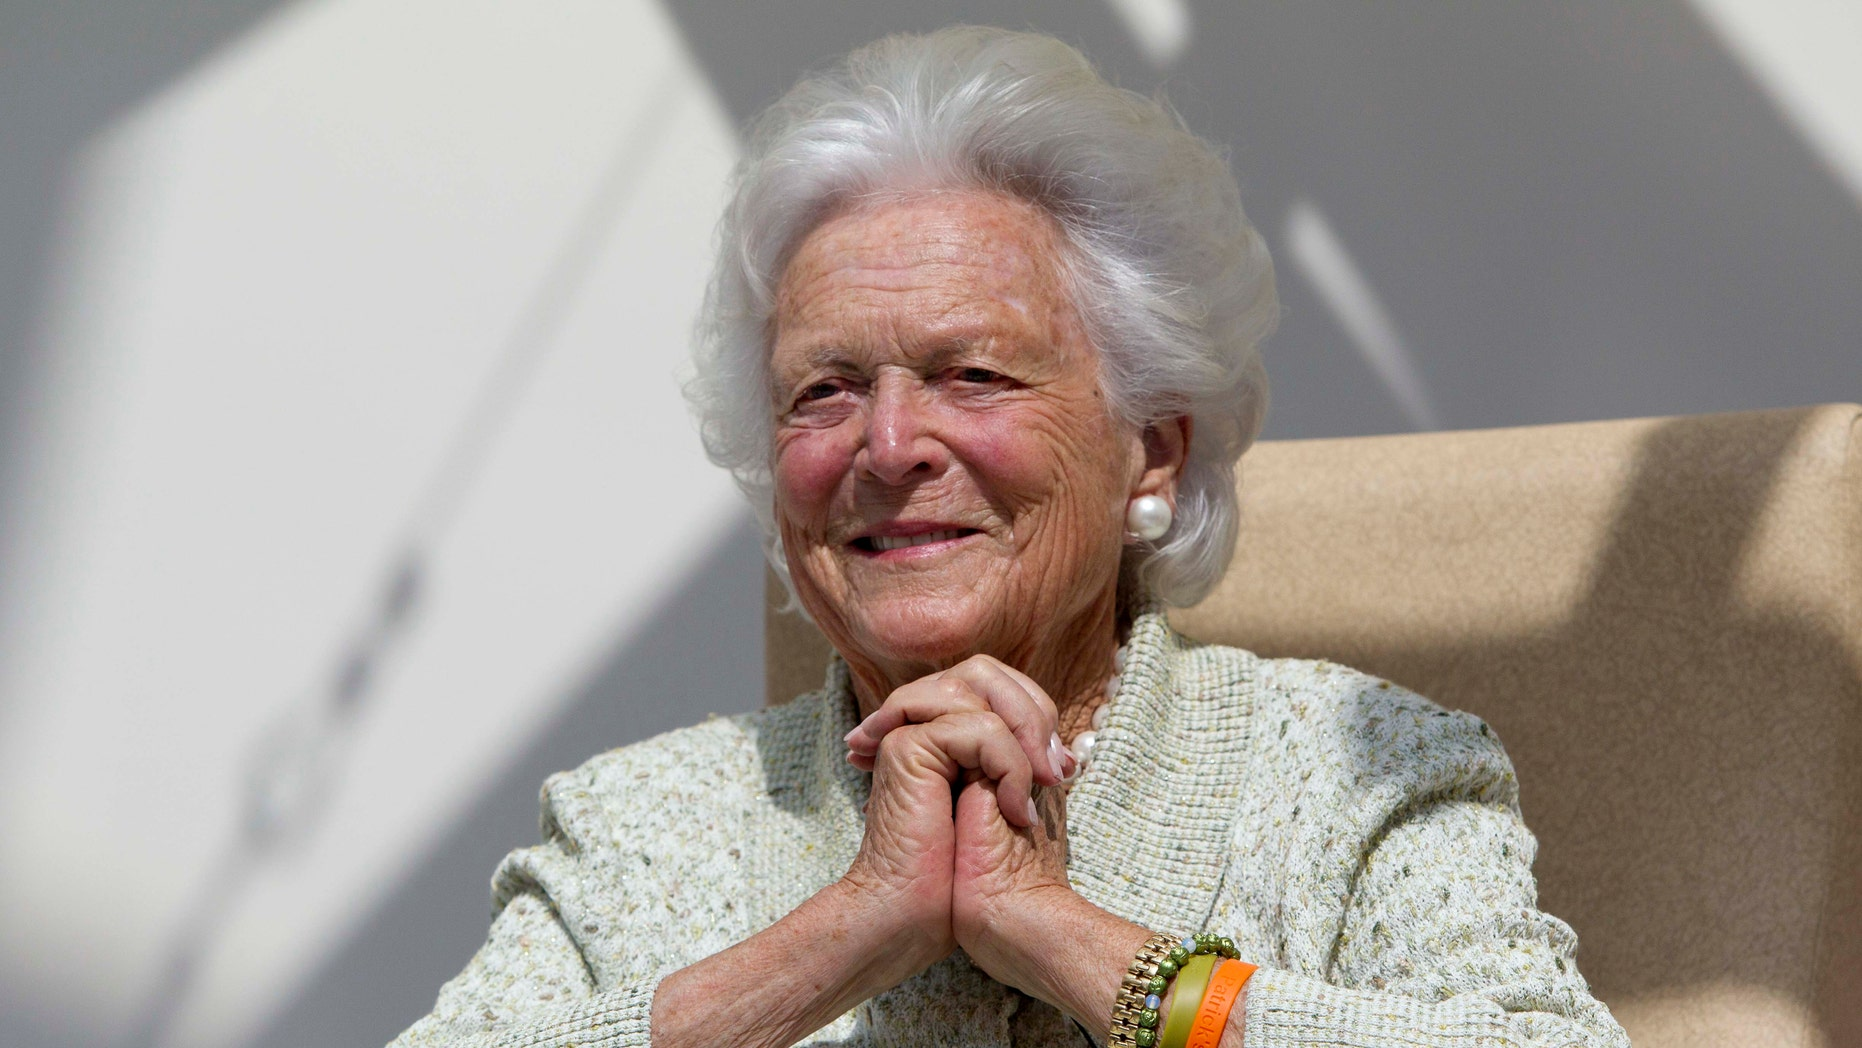 FILE - In a Thursday, Aug. 22, 2013 file photo, former first lady Barbara Bush listens to a patient's question during a visit to the Barbara Bush Children's Hospital at Maine Medical Center in Portland, Maine. Bush spokesman Jim McGrath says the wife of former President George H.W. Bush was released from Houston Methodist Hospital late Saturday morning, Jan. 5, 2014. The 88-year-old Bush family matriarch had been hospitalized since Monday. (AP Photo/Robert F. Bukaty, File)